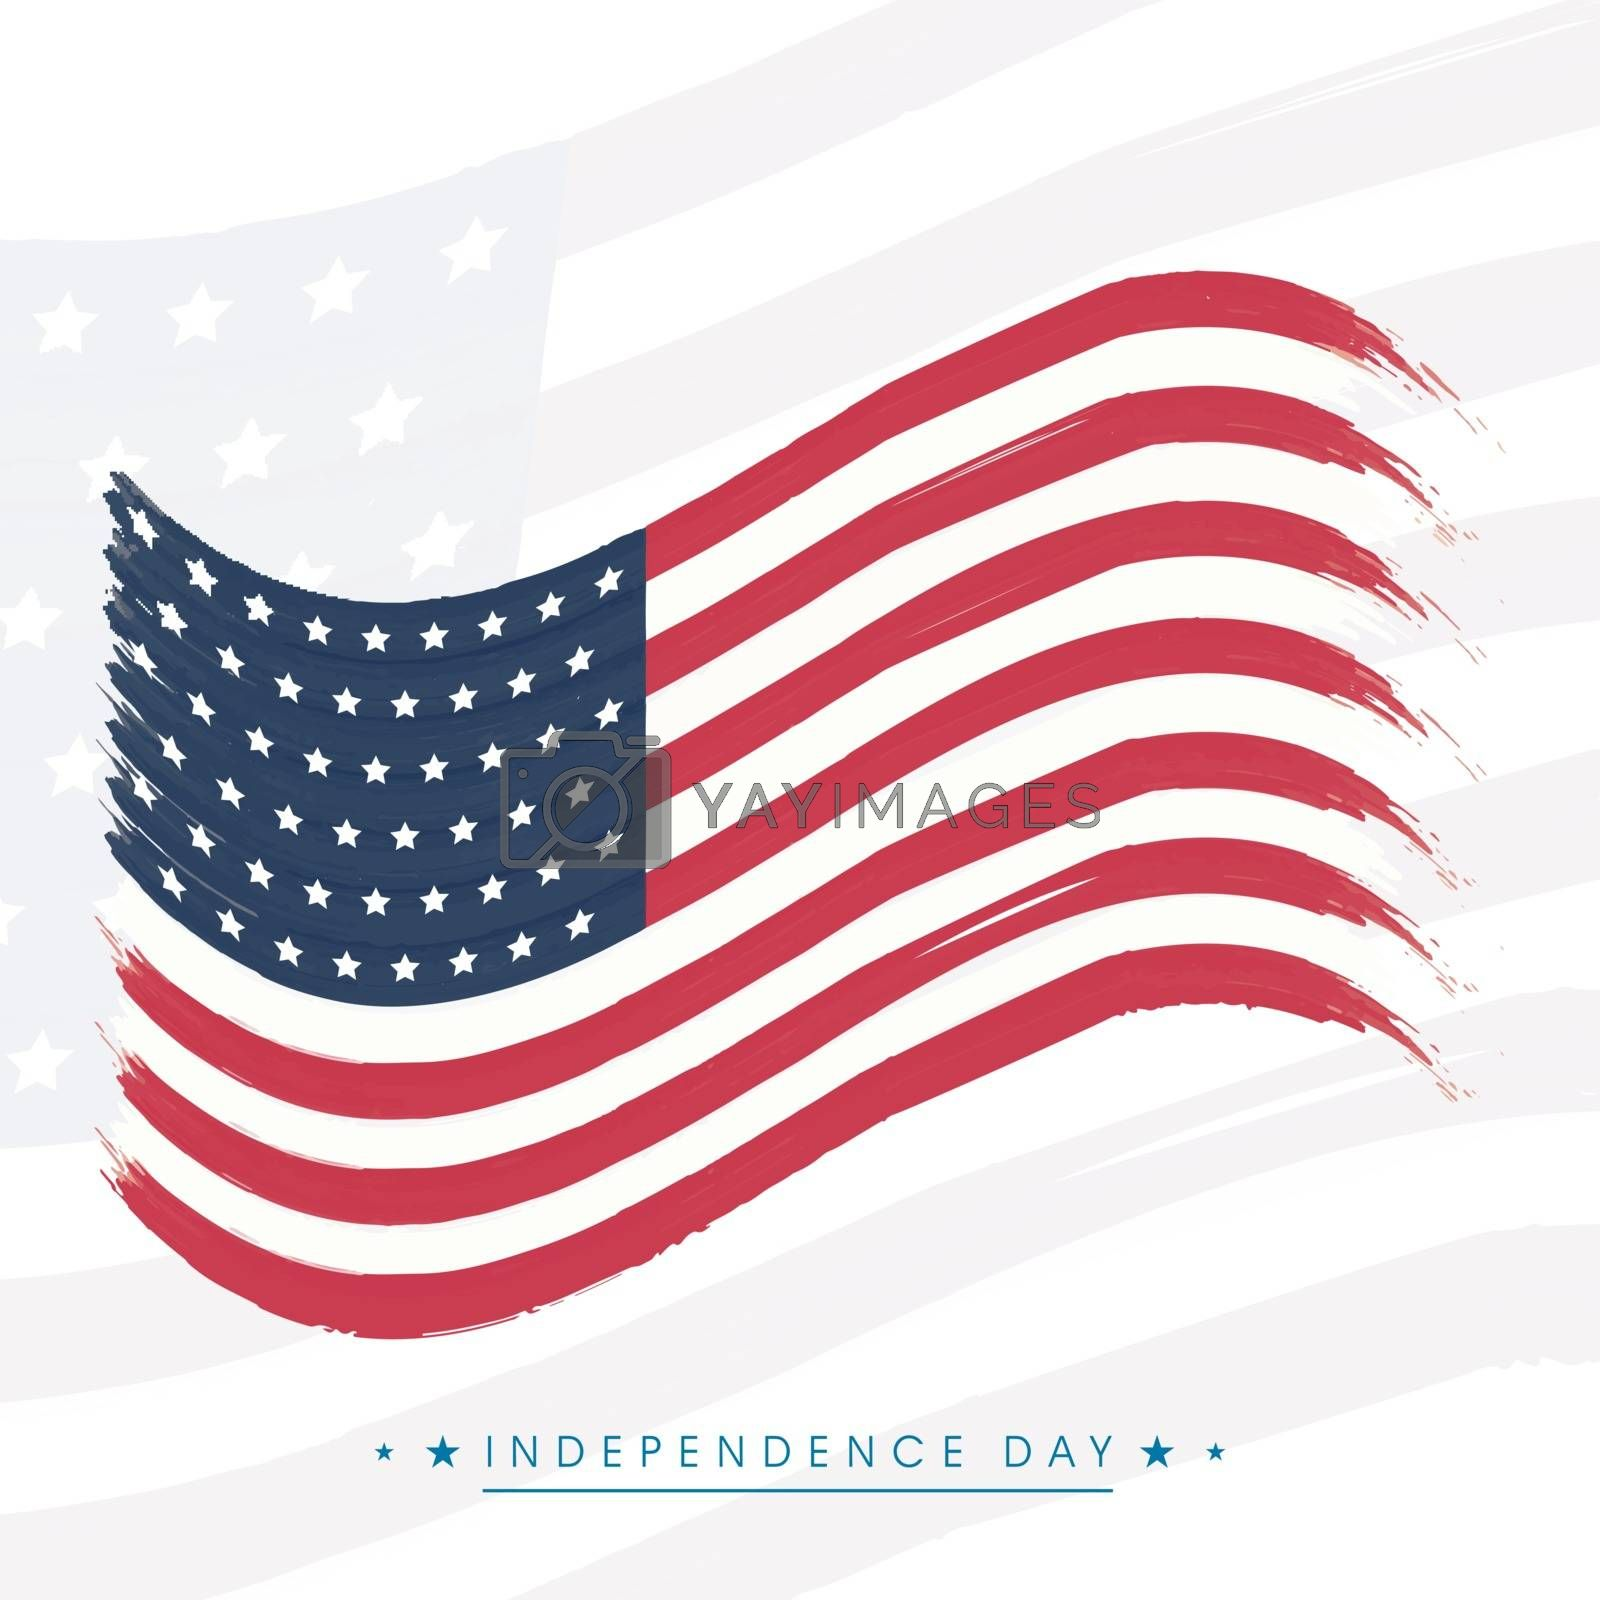 Waving American Flag design for 4th of July, Independence Day celebration.